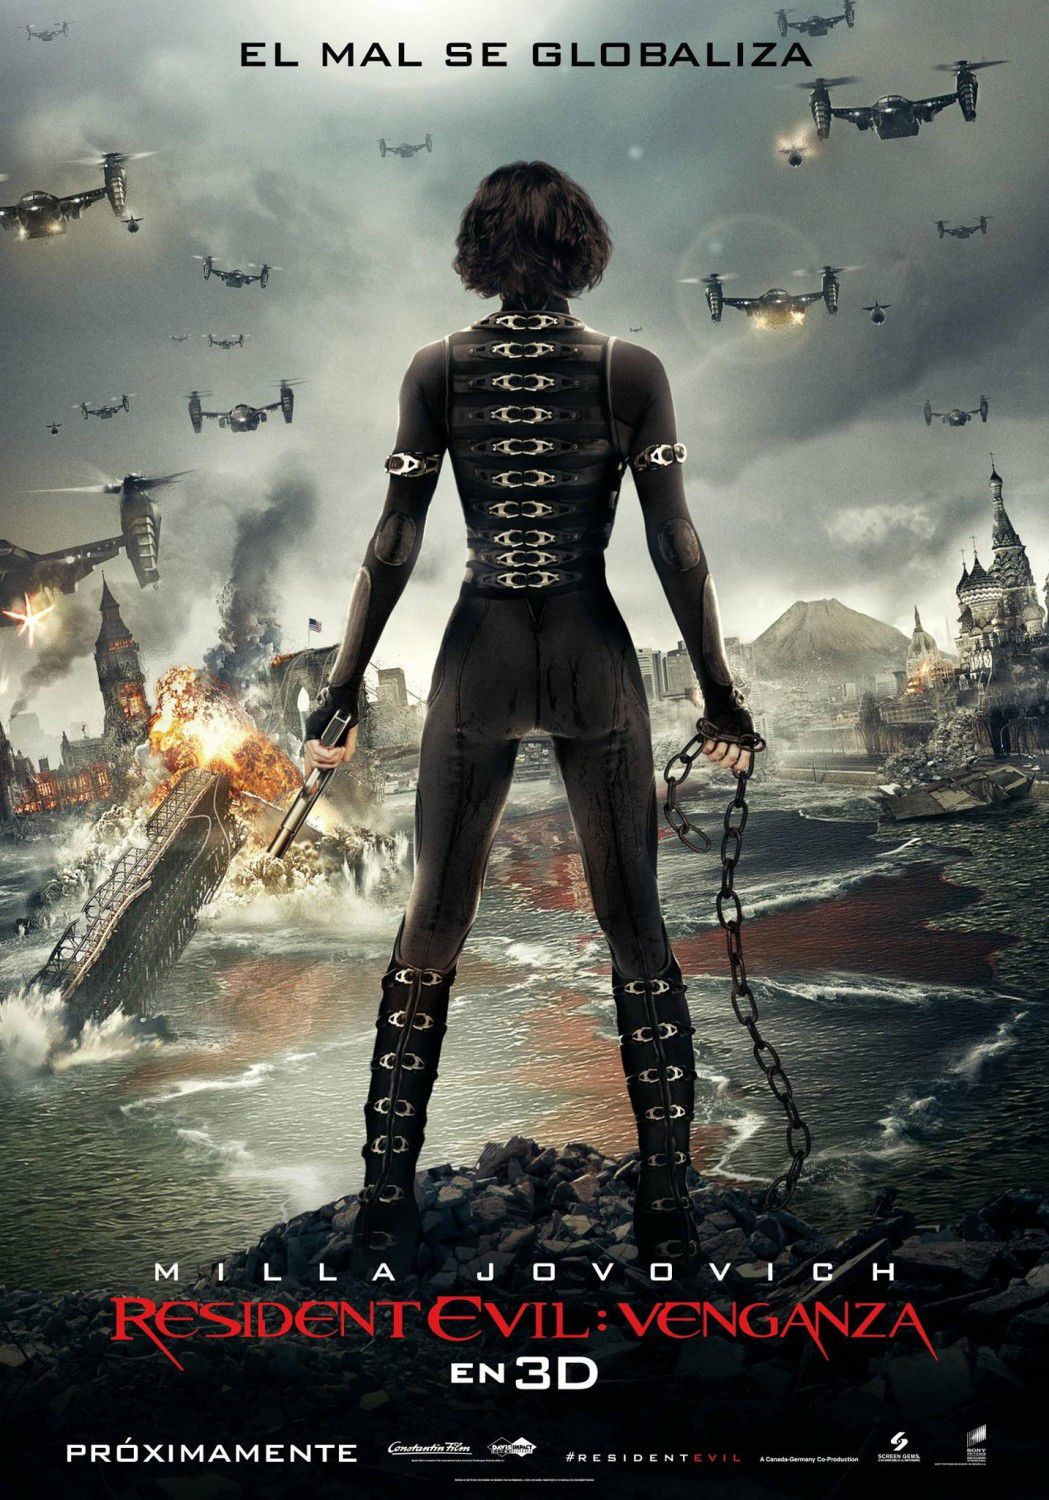 Resident Evil 5 - Retribution (2012) - Final Battle begin - Milla Jovovich is Alice